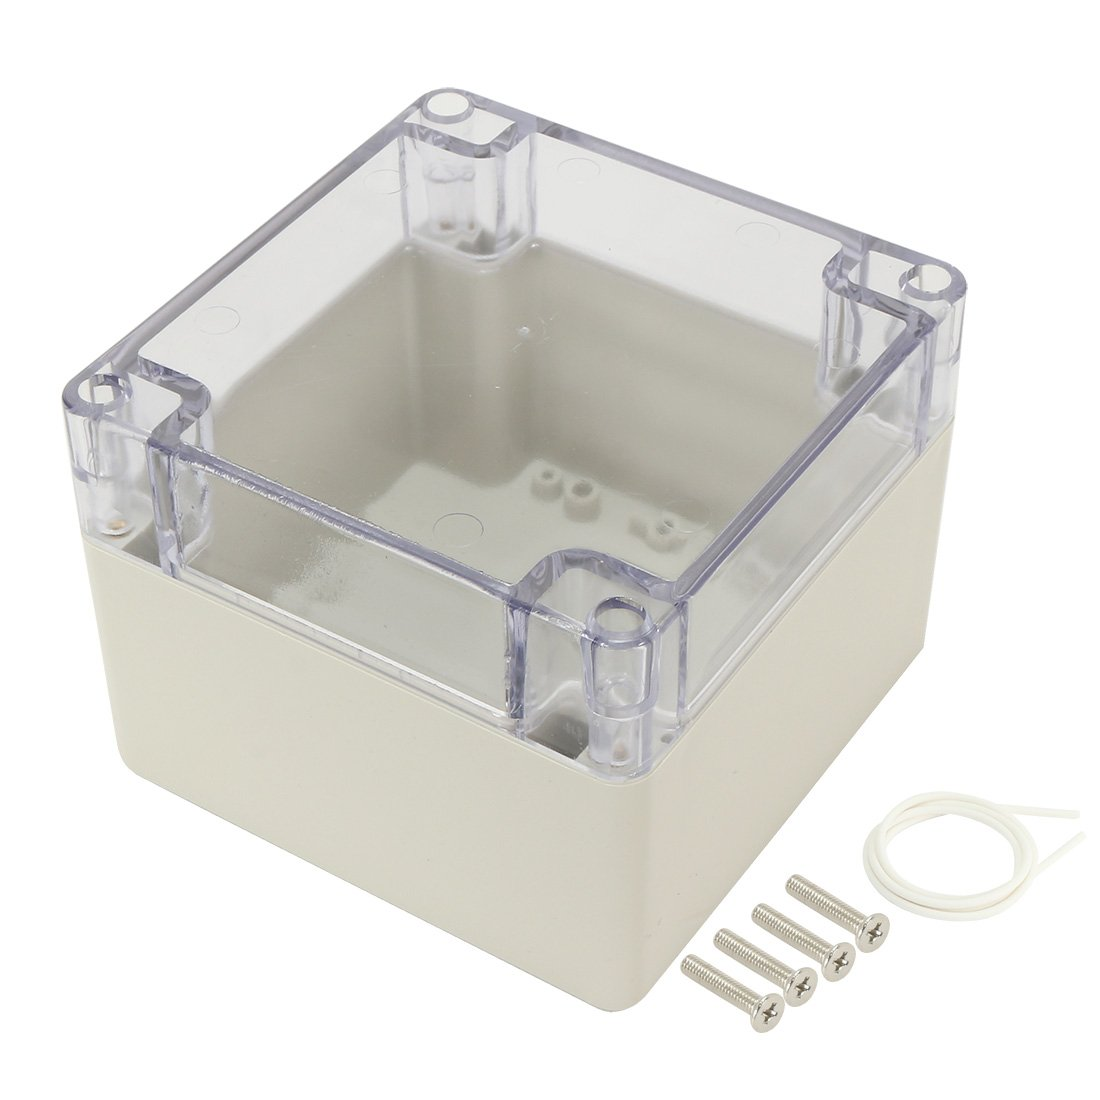 uxcell 4.7''x4.7''x3.5''(120mmx120mmx90mm) ABS Junction Box Universal Project Enclosure with PC Transparent Cover by uxcell